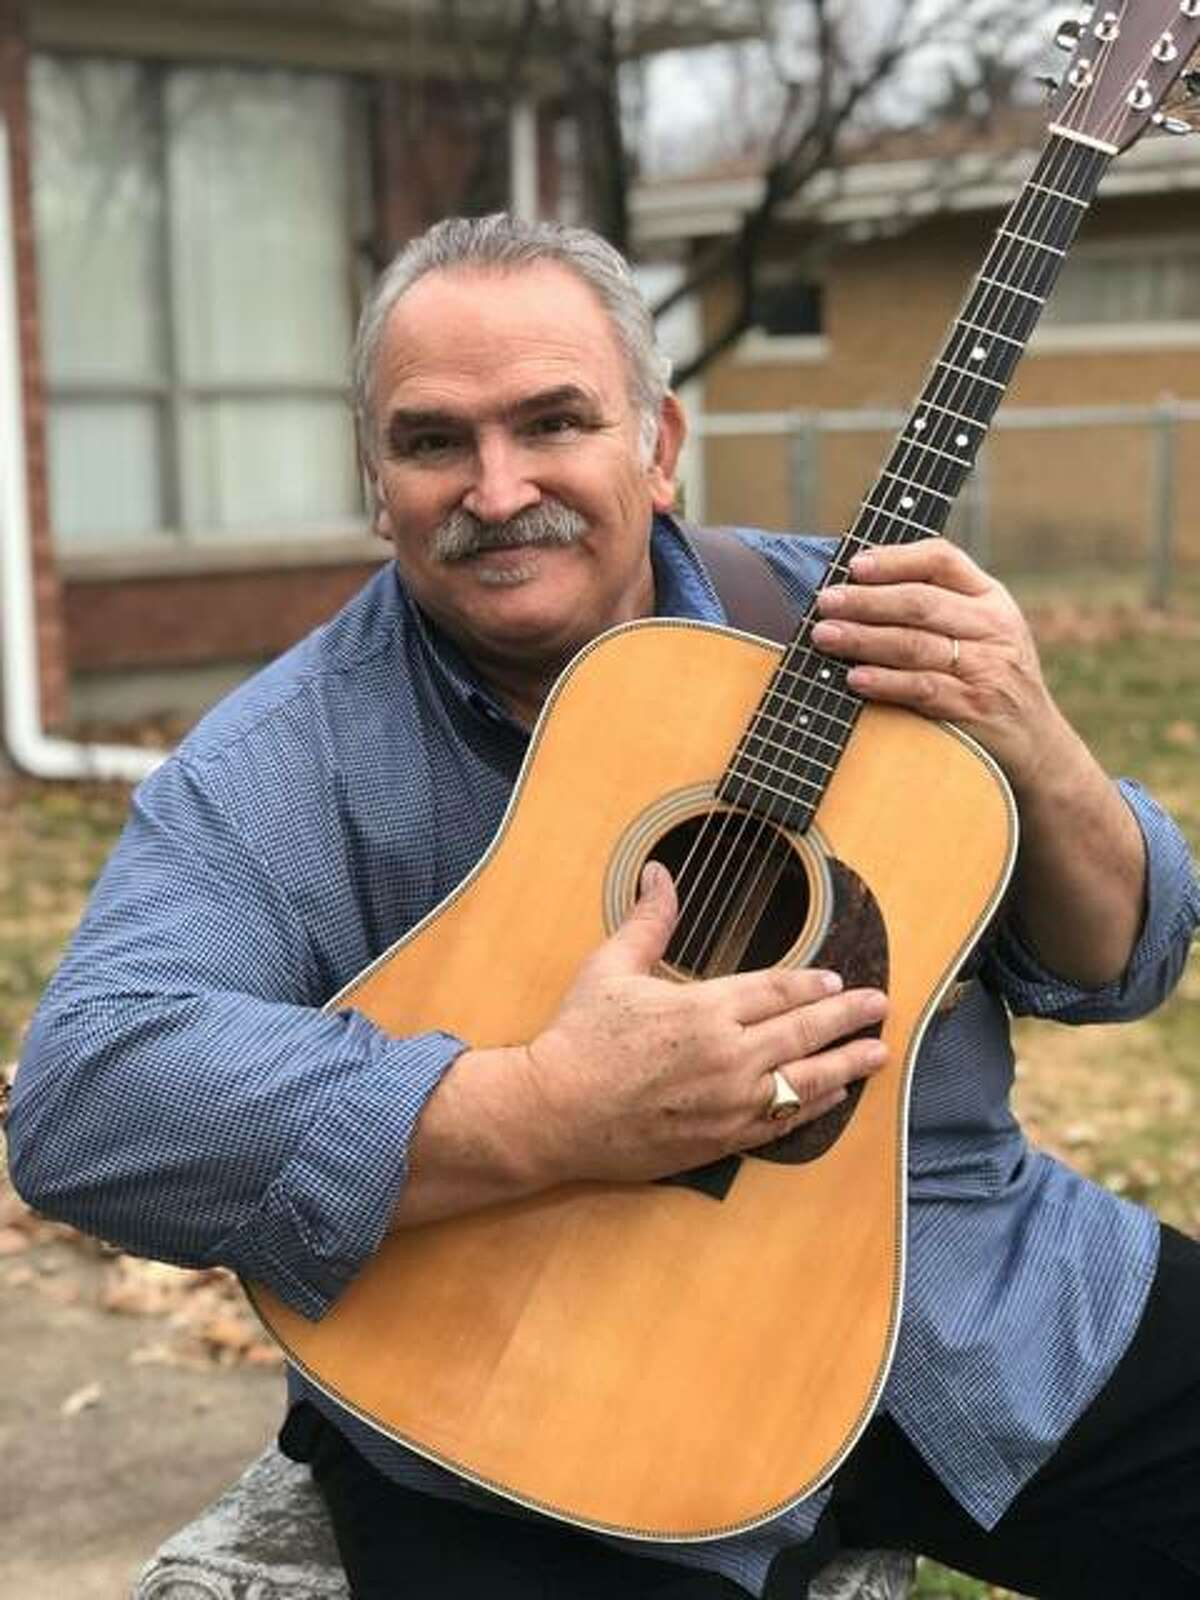 Tommy Tunes will perform noon to 1 p.m. Friday, Oct. 15, at the SSP Wellness Center parking lot, 2603 N. Rodgers Ave.